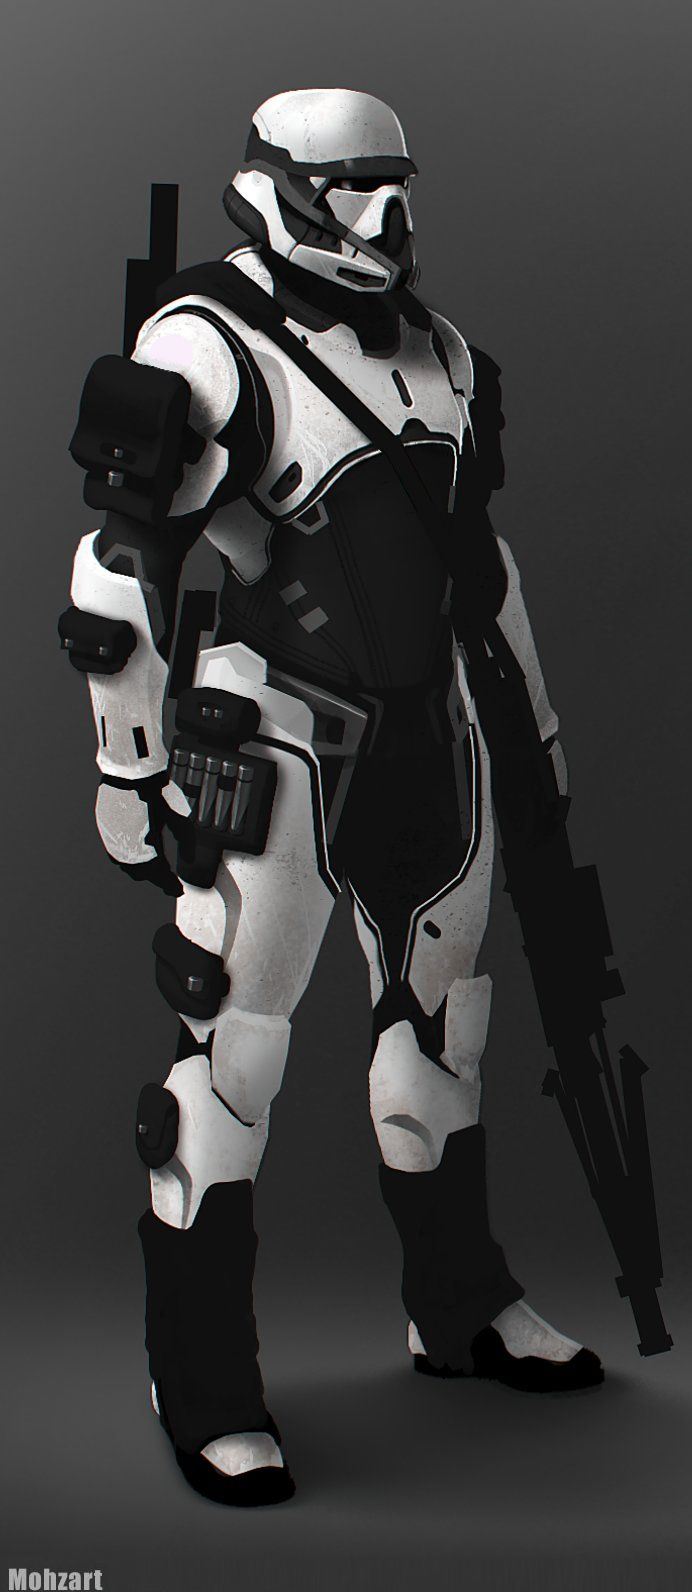 Stormtrooper fan art re-design by Moh Z. Mukhtar